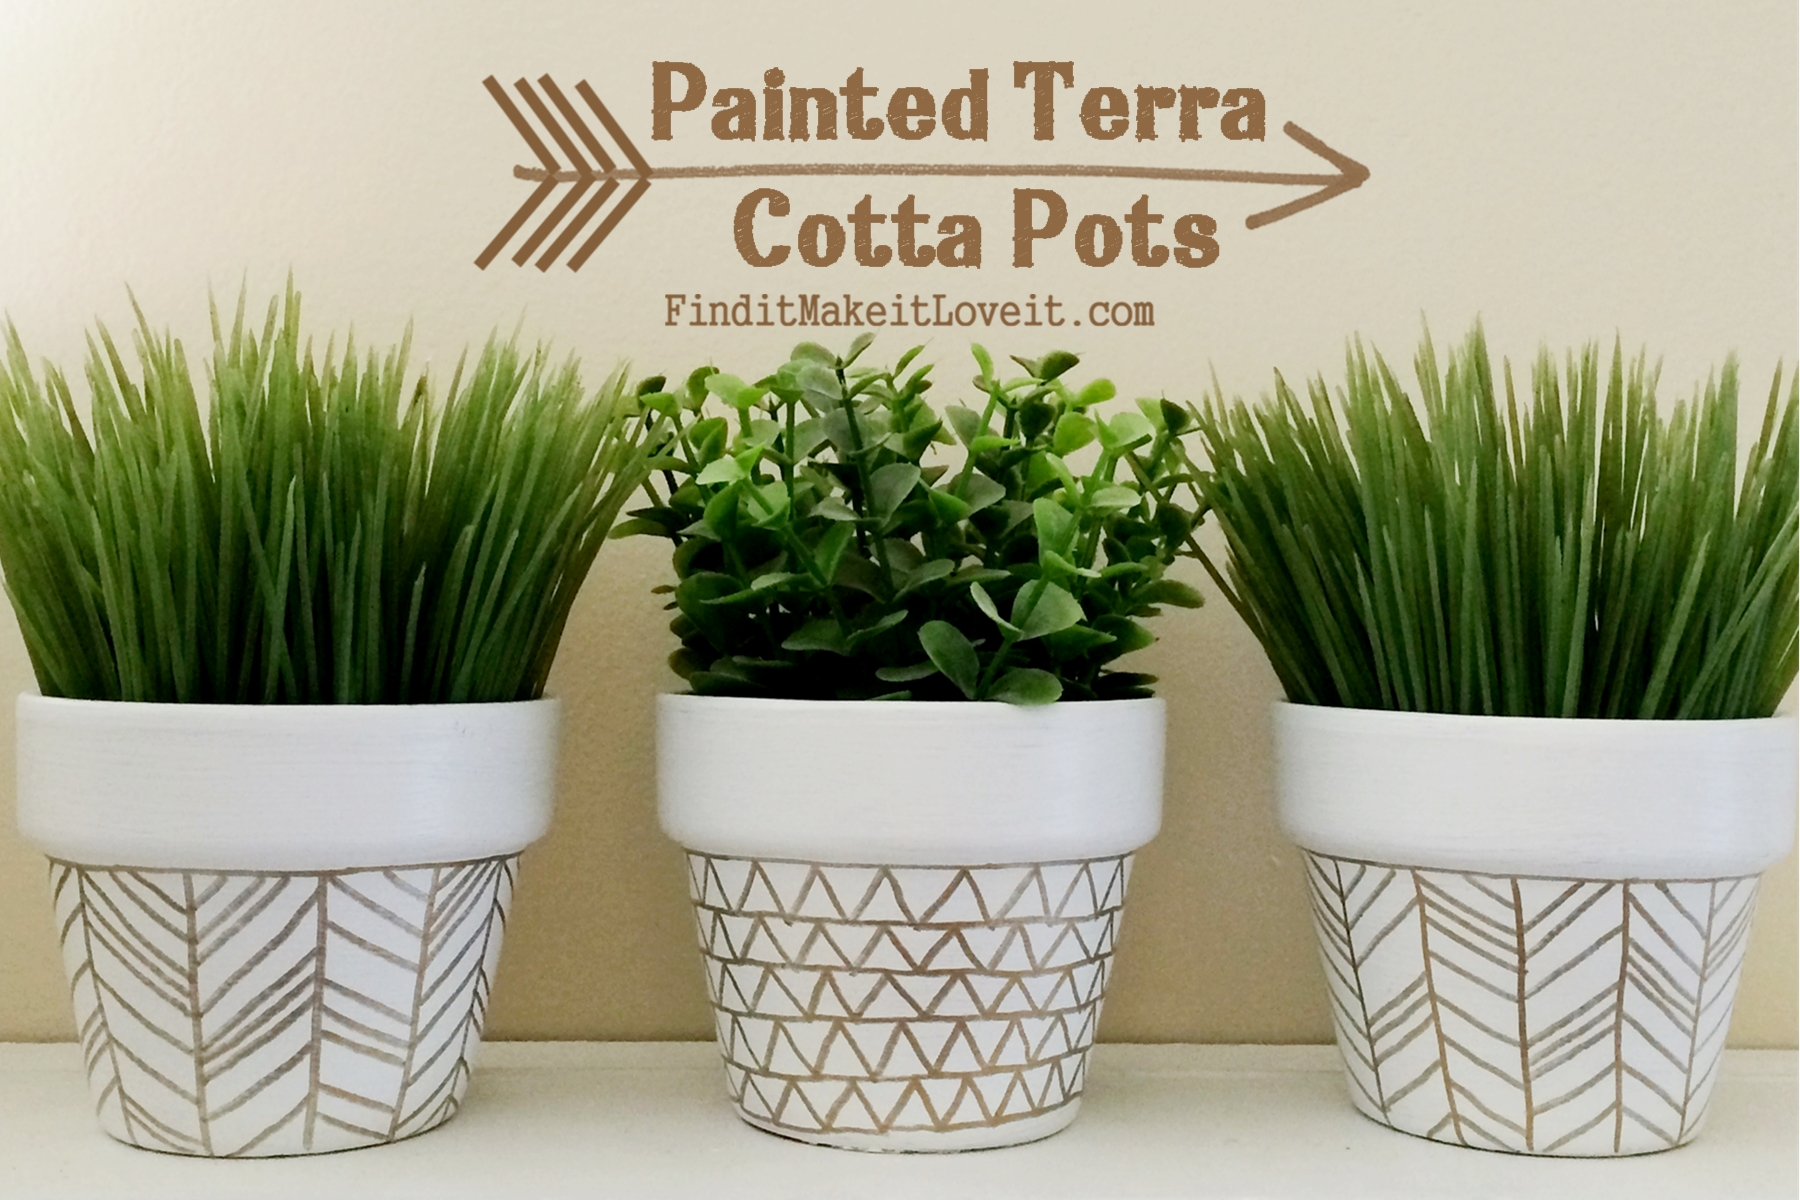 Painted Terra Cotta Pots Find It Make It Love It